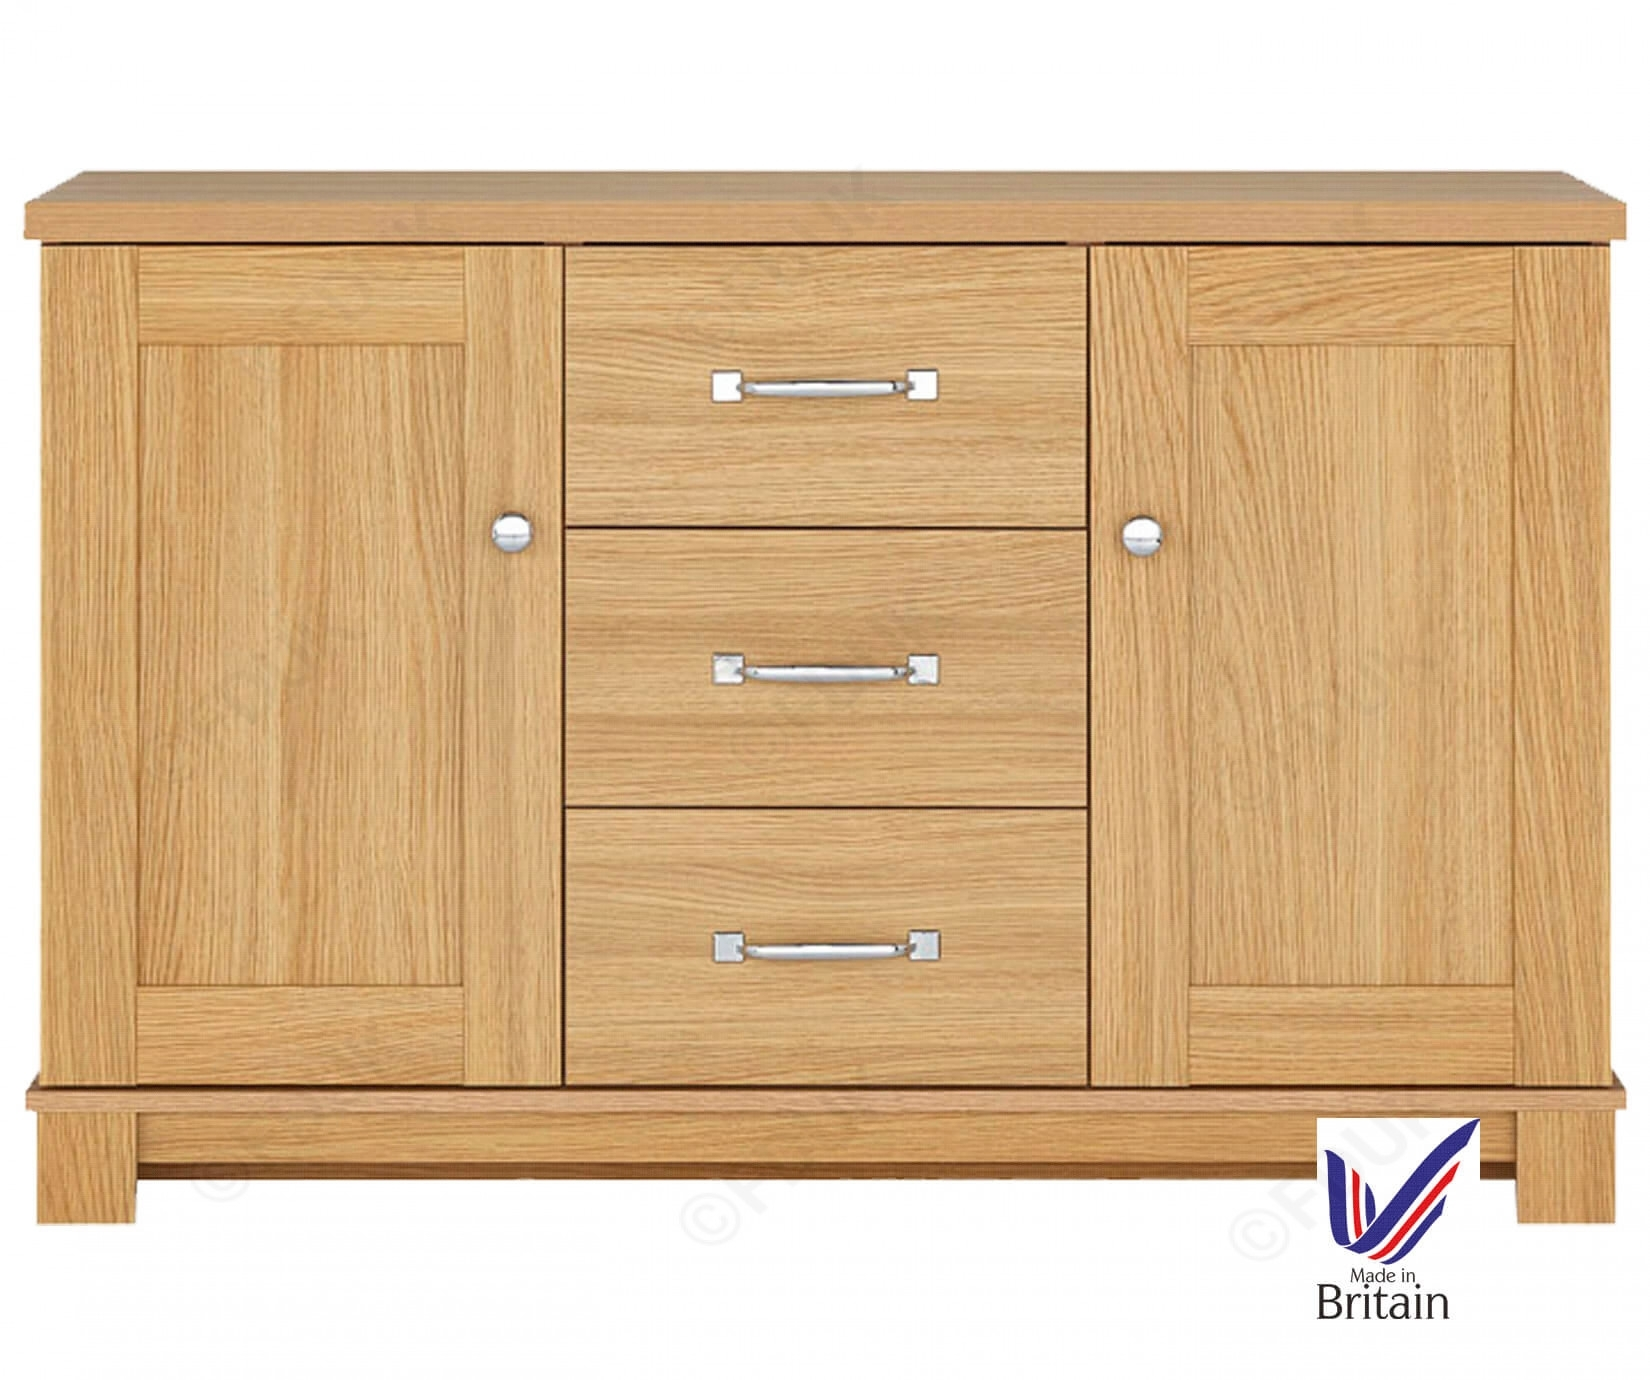 Kingstown Dalby| Dalby 2 Door 3 Center Drawer Sideboard within Walnut Finish 2-Door/3-Drawer Sideboards (Image 12 of 30)